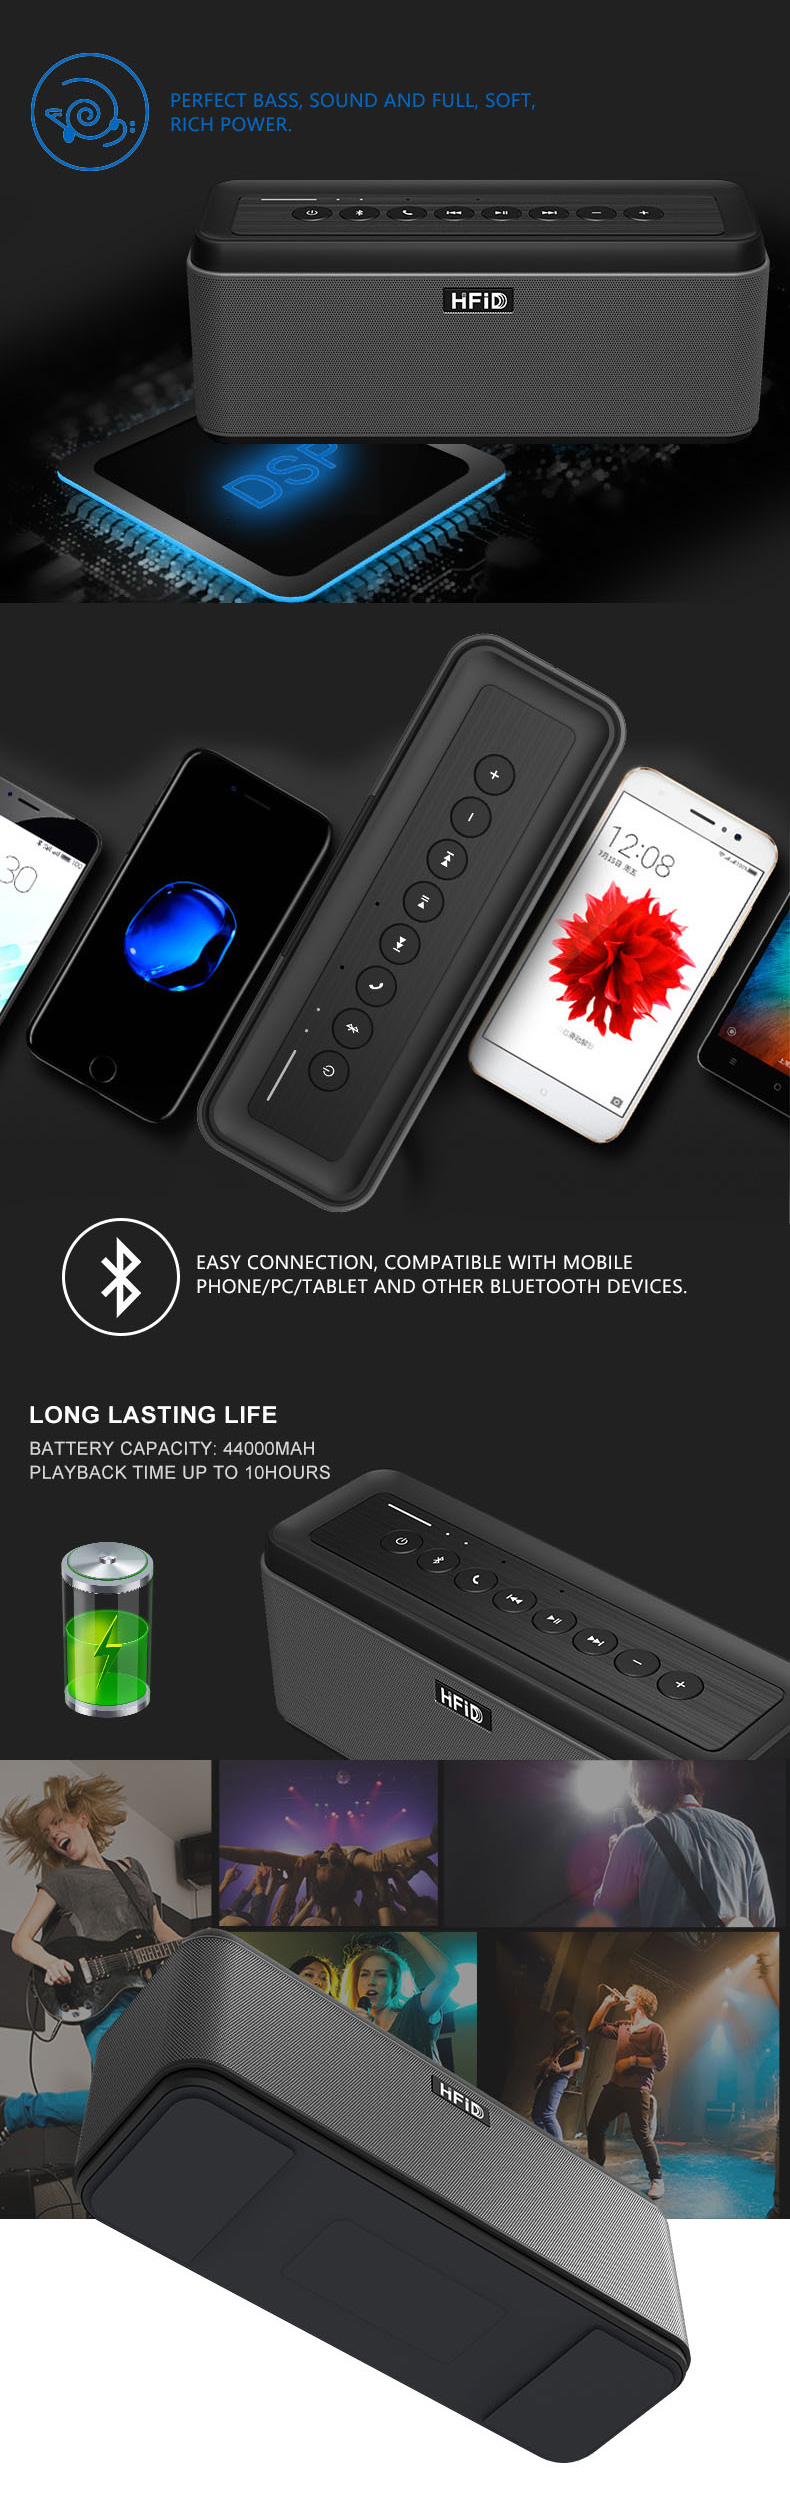 Booming Hot Selling Stereo Portable Mini Wireless Bluetooth Speaker